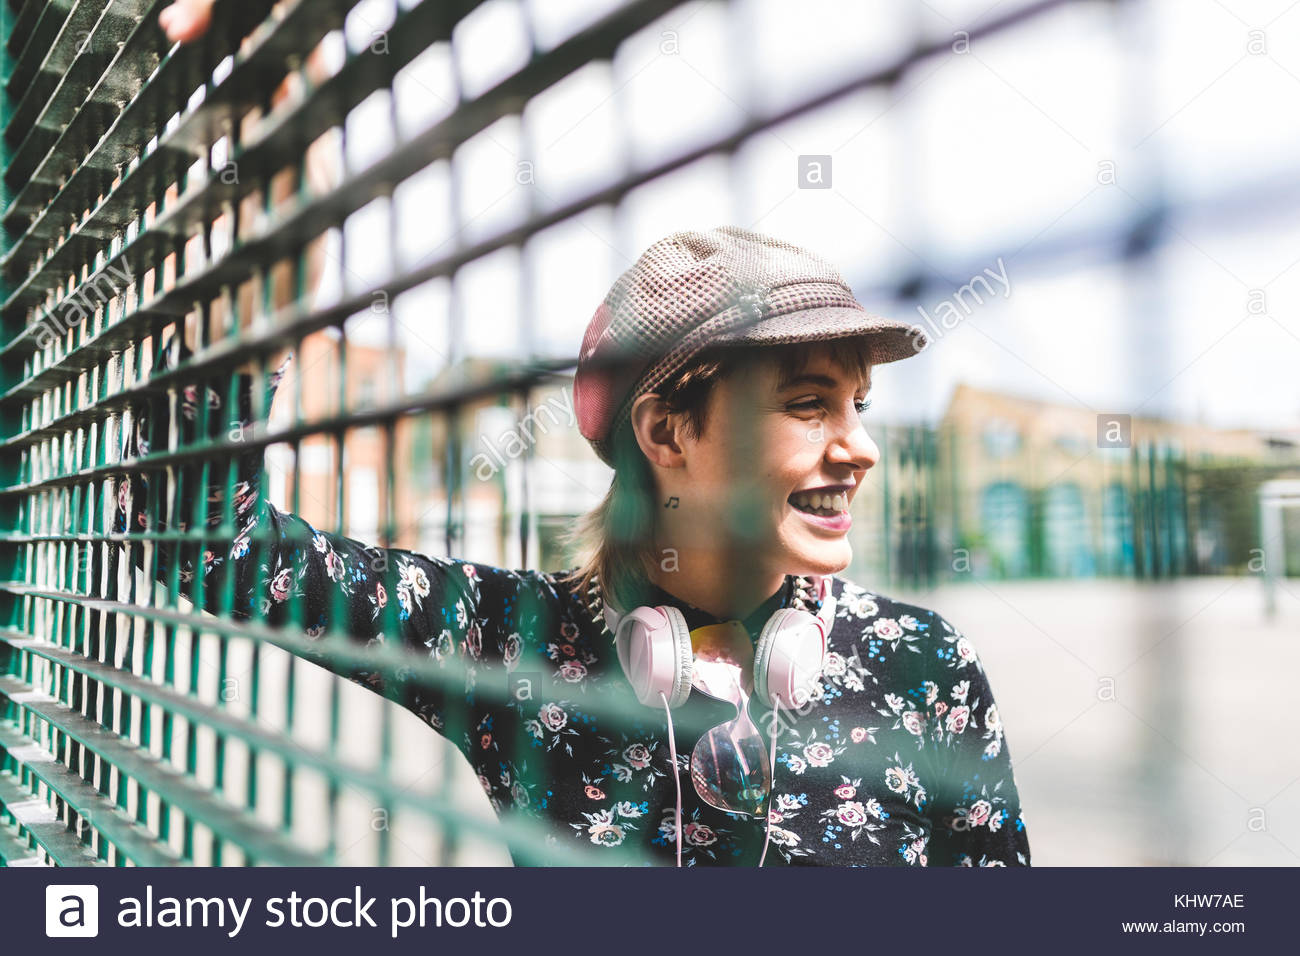 Retro styled young woman in baker boy hat behind wire fence - Stock Image